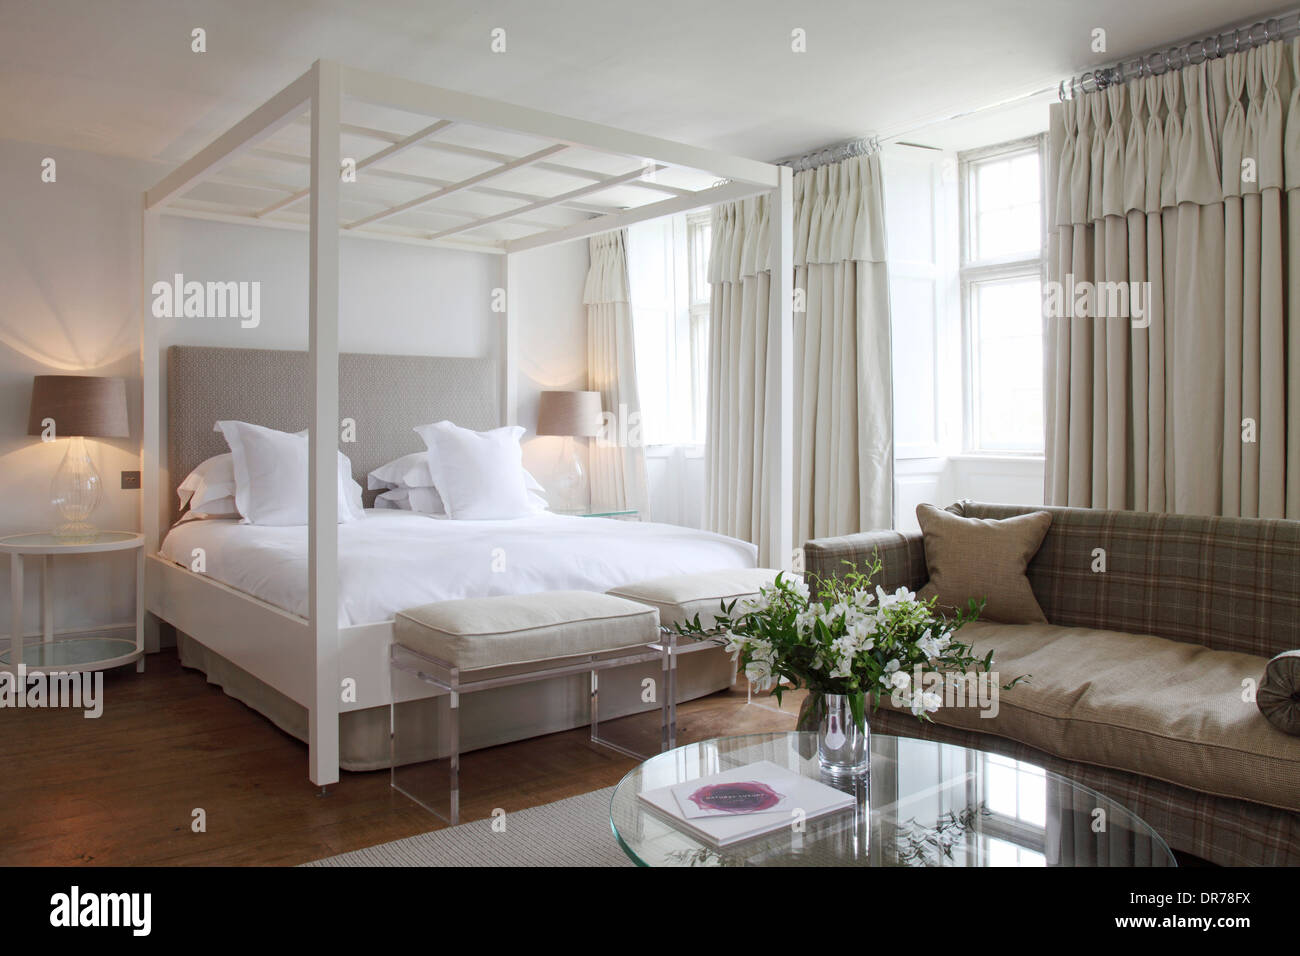 4 Post Bed White White Four Poster Bed In Hotel Suite With Flowers On Glass